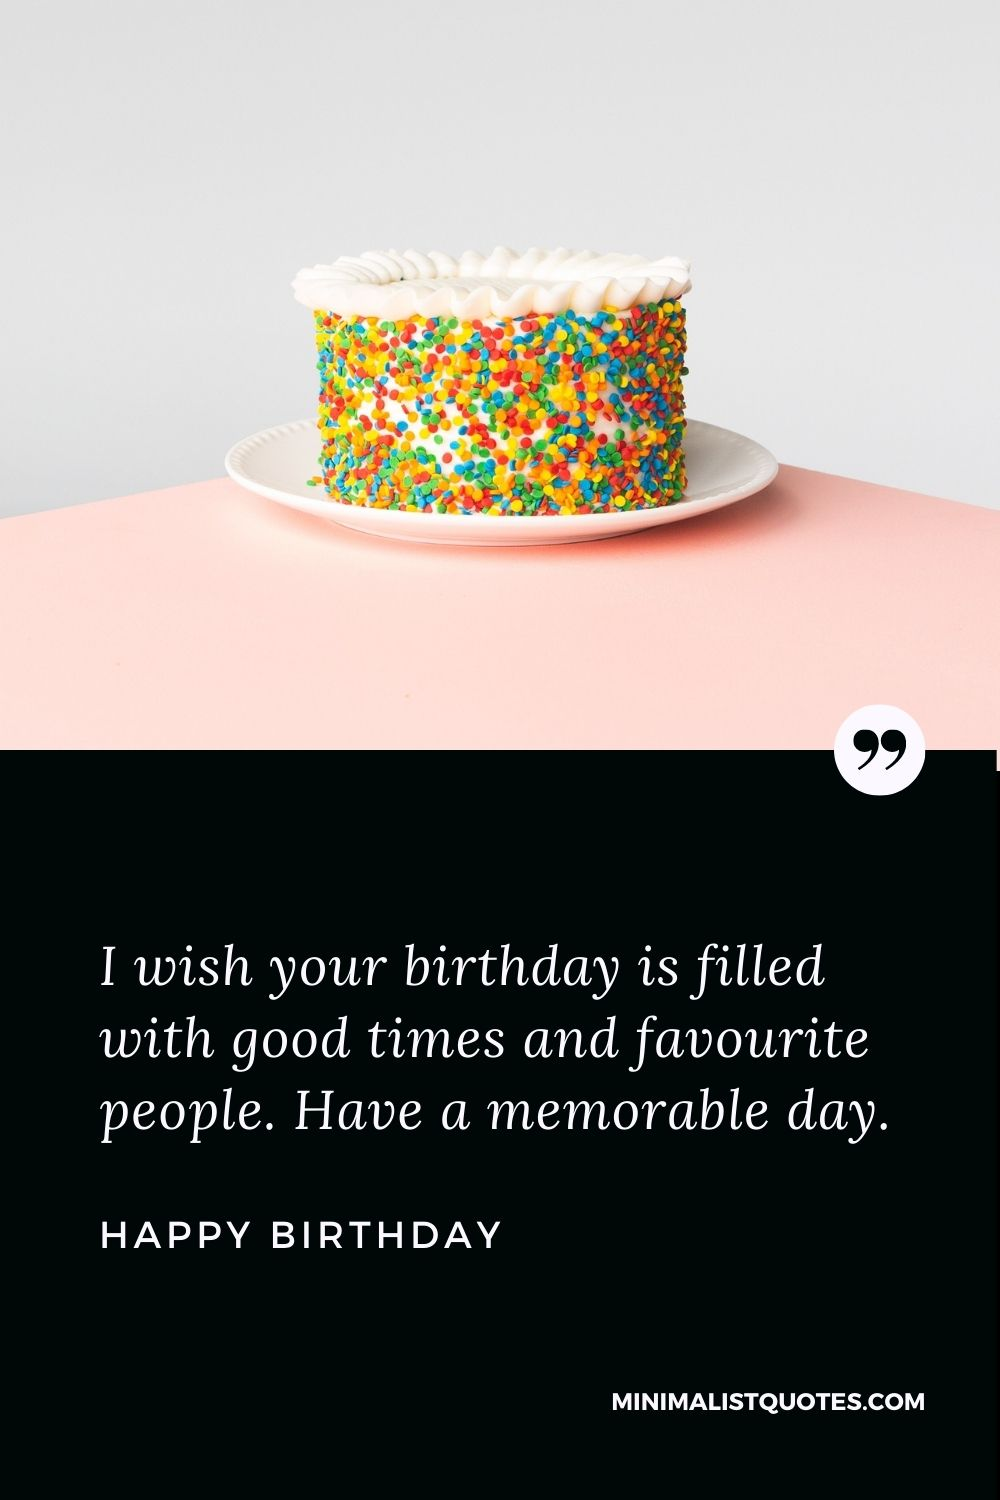 Happy Birthday Wish - I wish your birthday is filled with good times and favourite people. Have a memorable day.